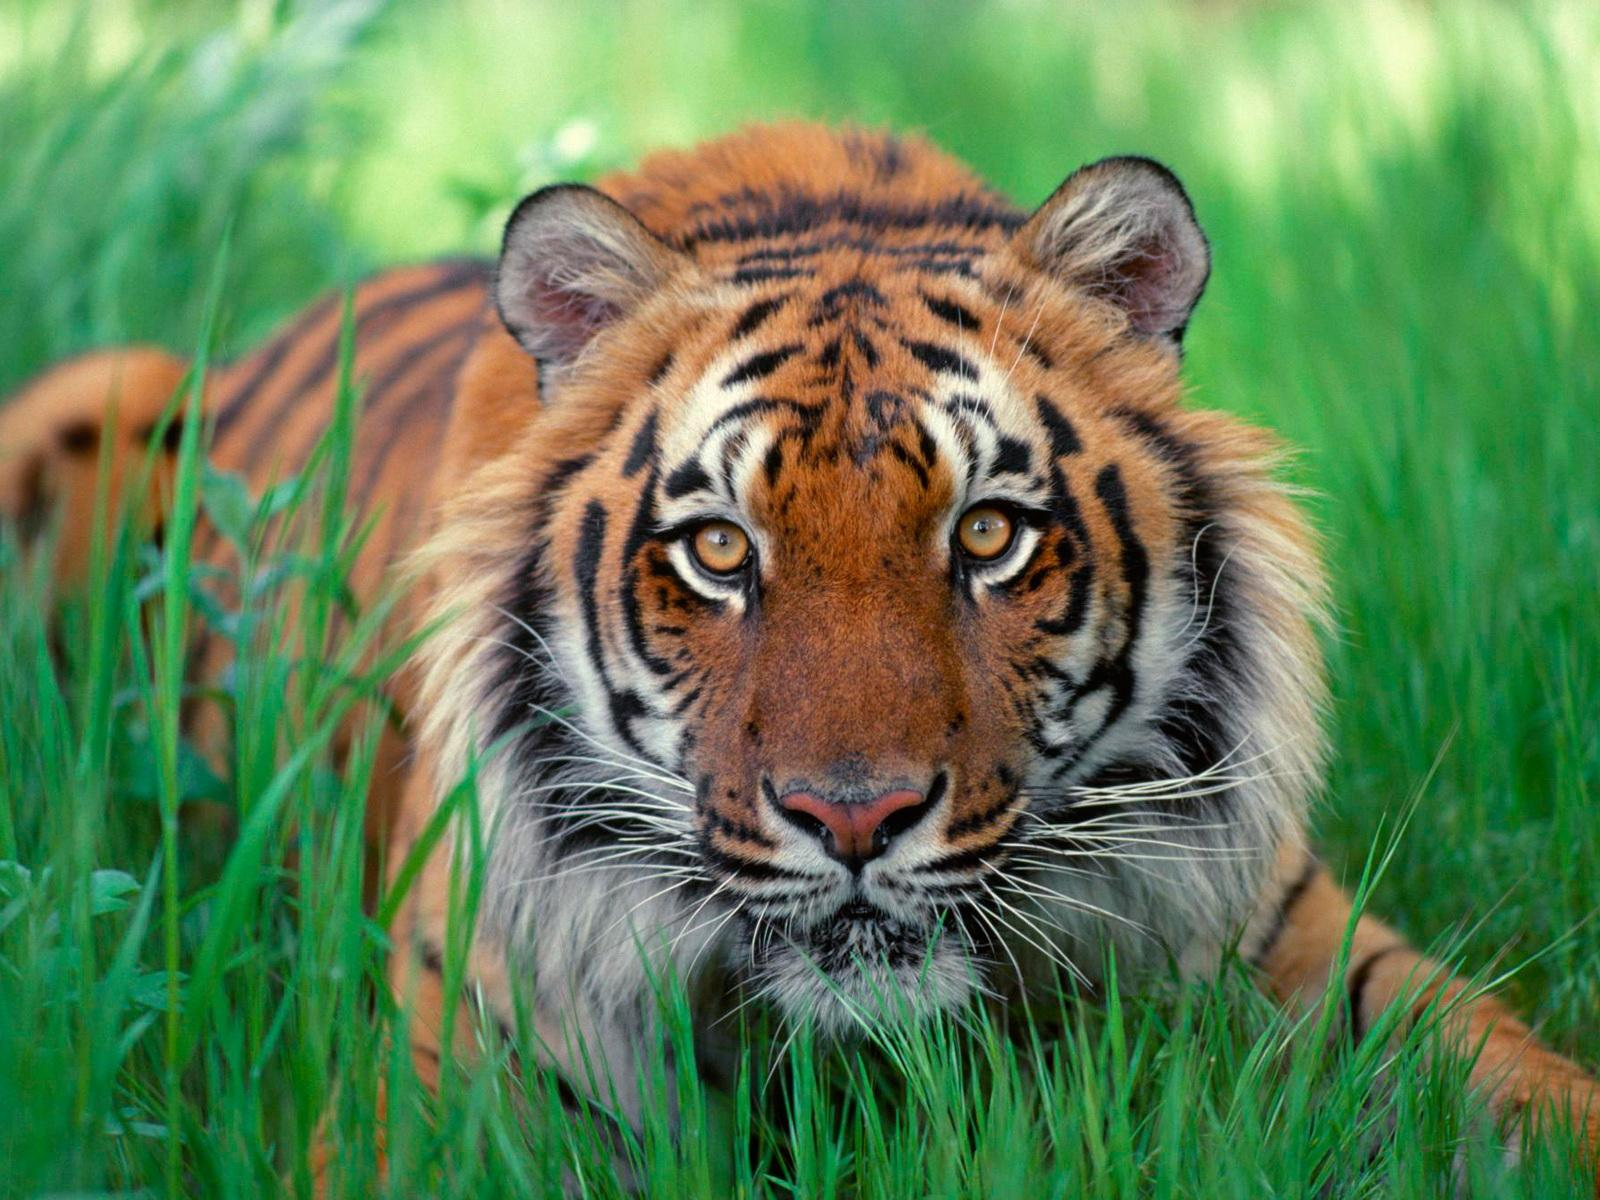 Tiger high resolution desktop wallpapers free download